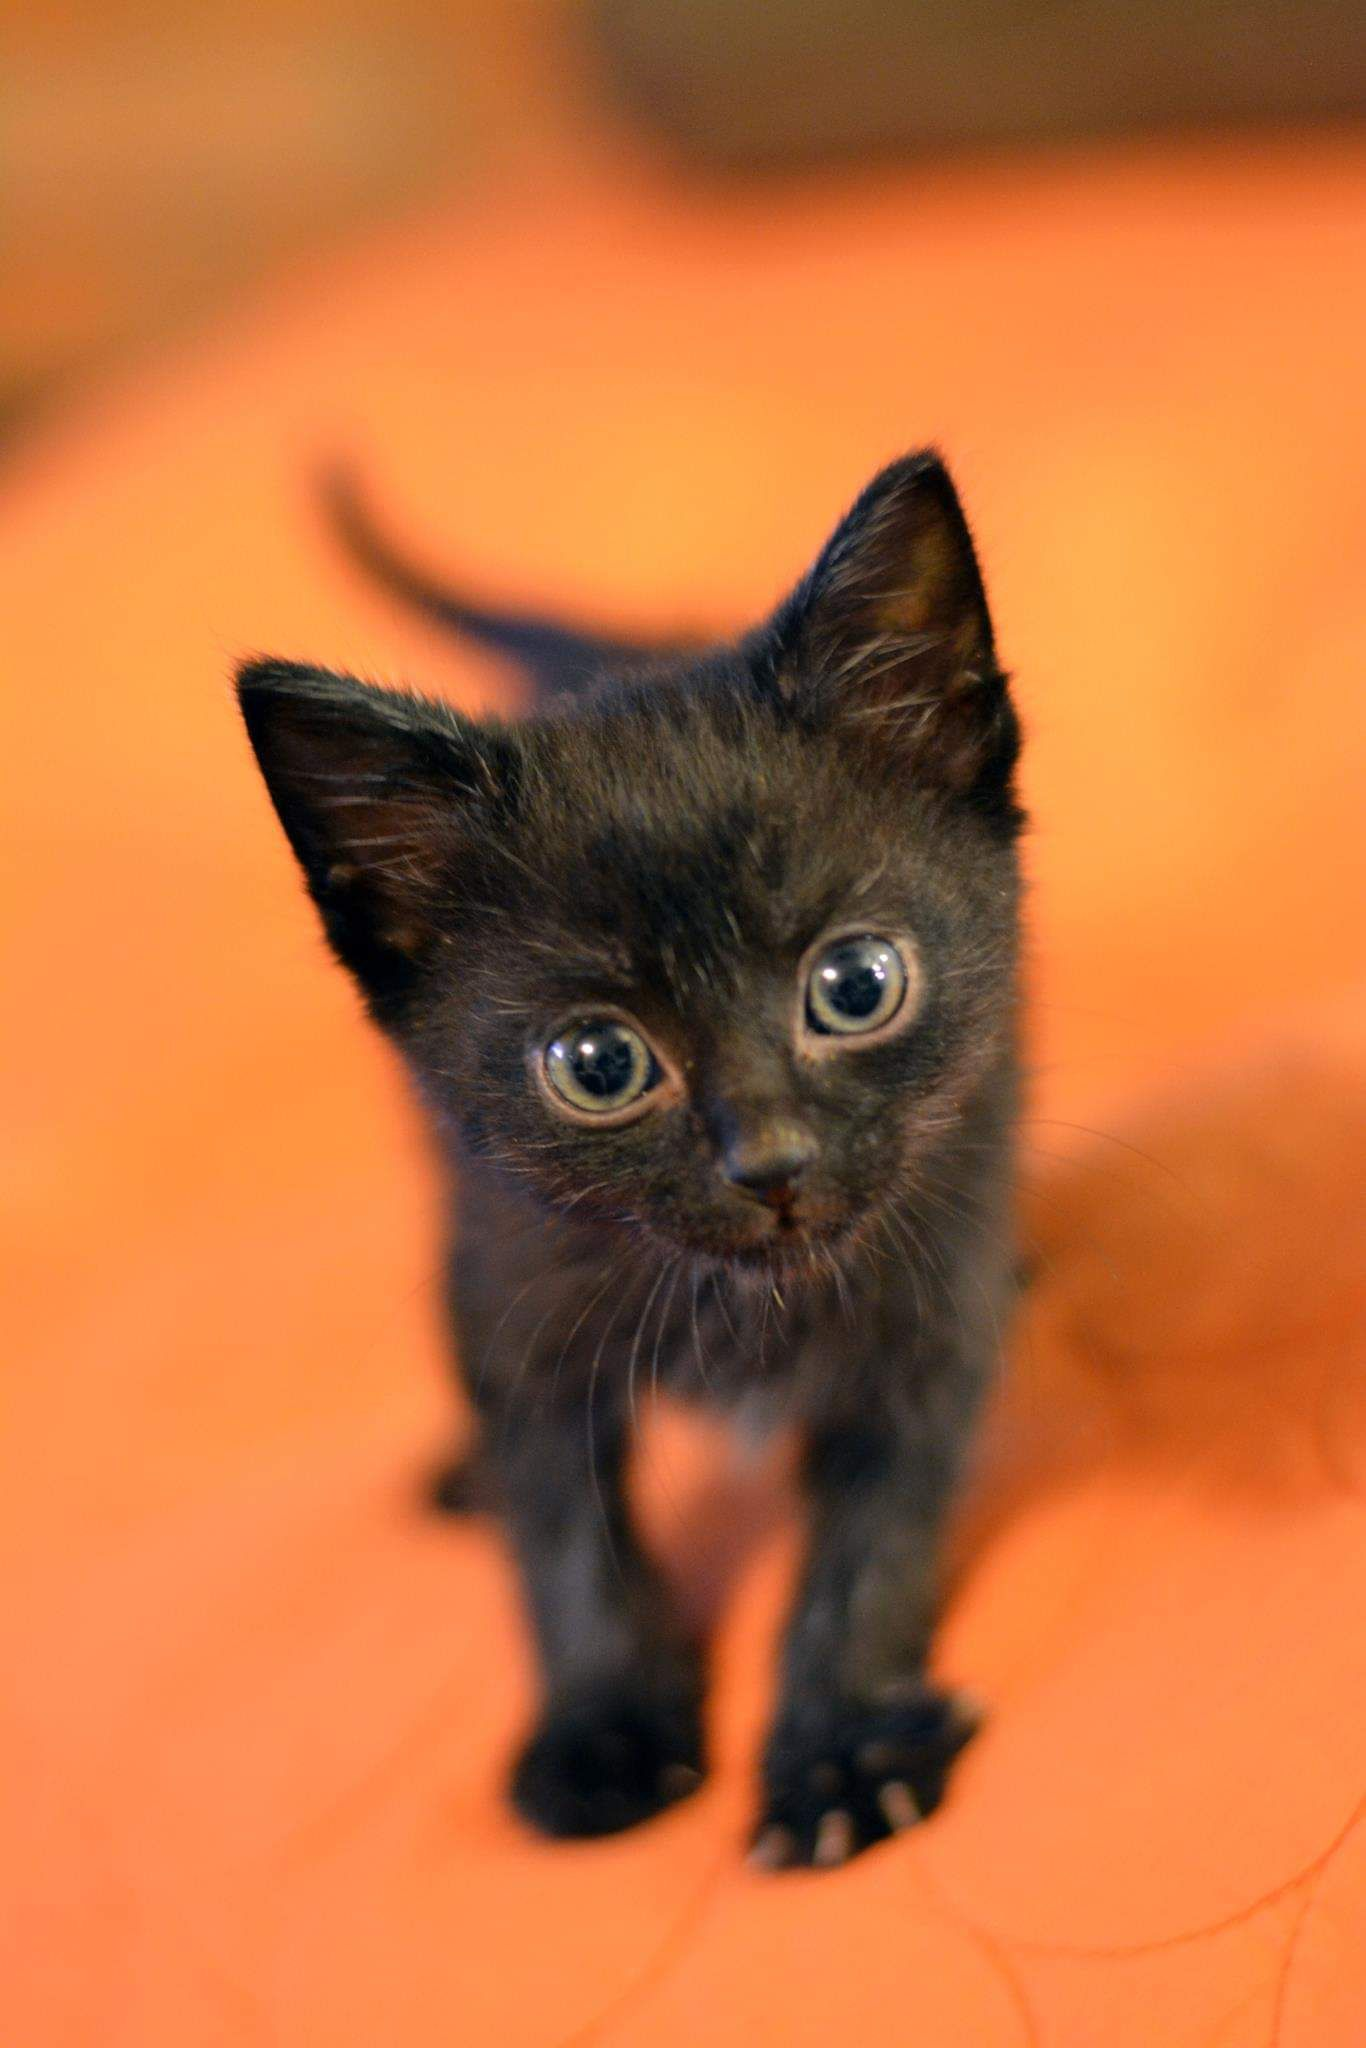 Soot S Baby Photo In Honor Of His 2 Year Foster Fail Adoption Anniversary Cats Kittens And Puppies Kittens Cutest